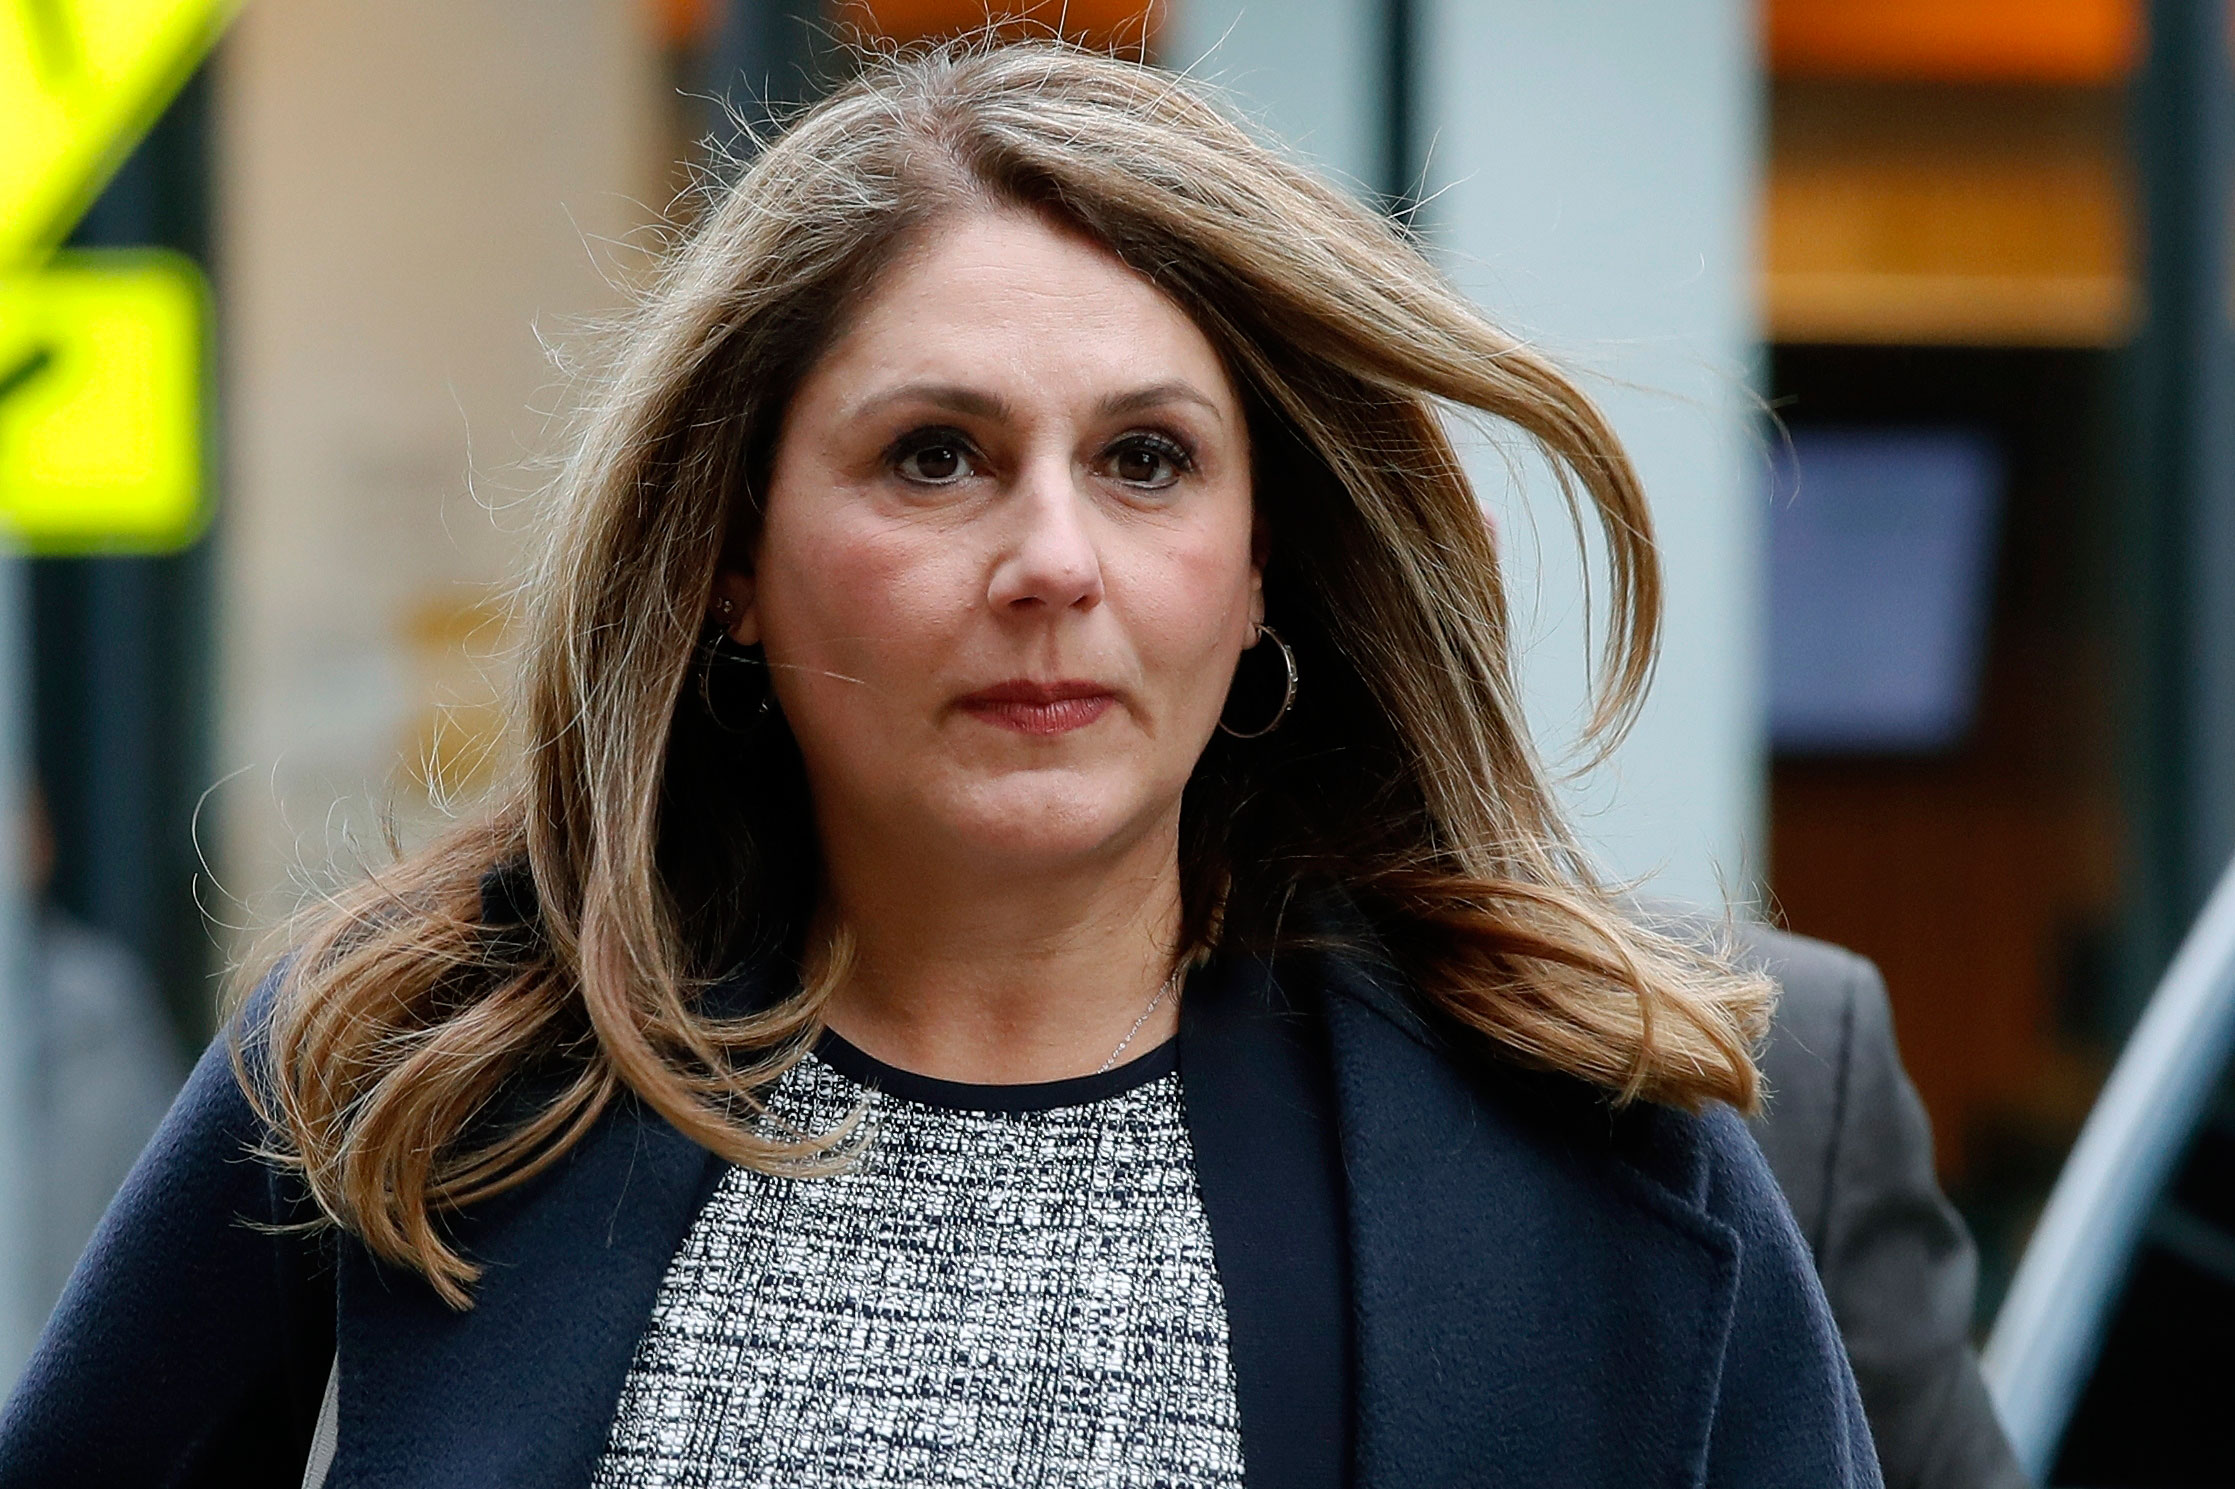 Hot Pockets heiress Michelle Janavs sentenced to 5 months imprisonment in college admissions scam